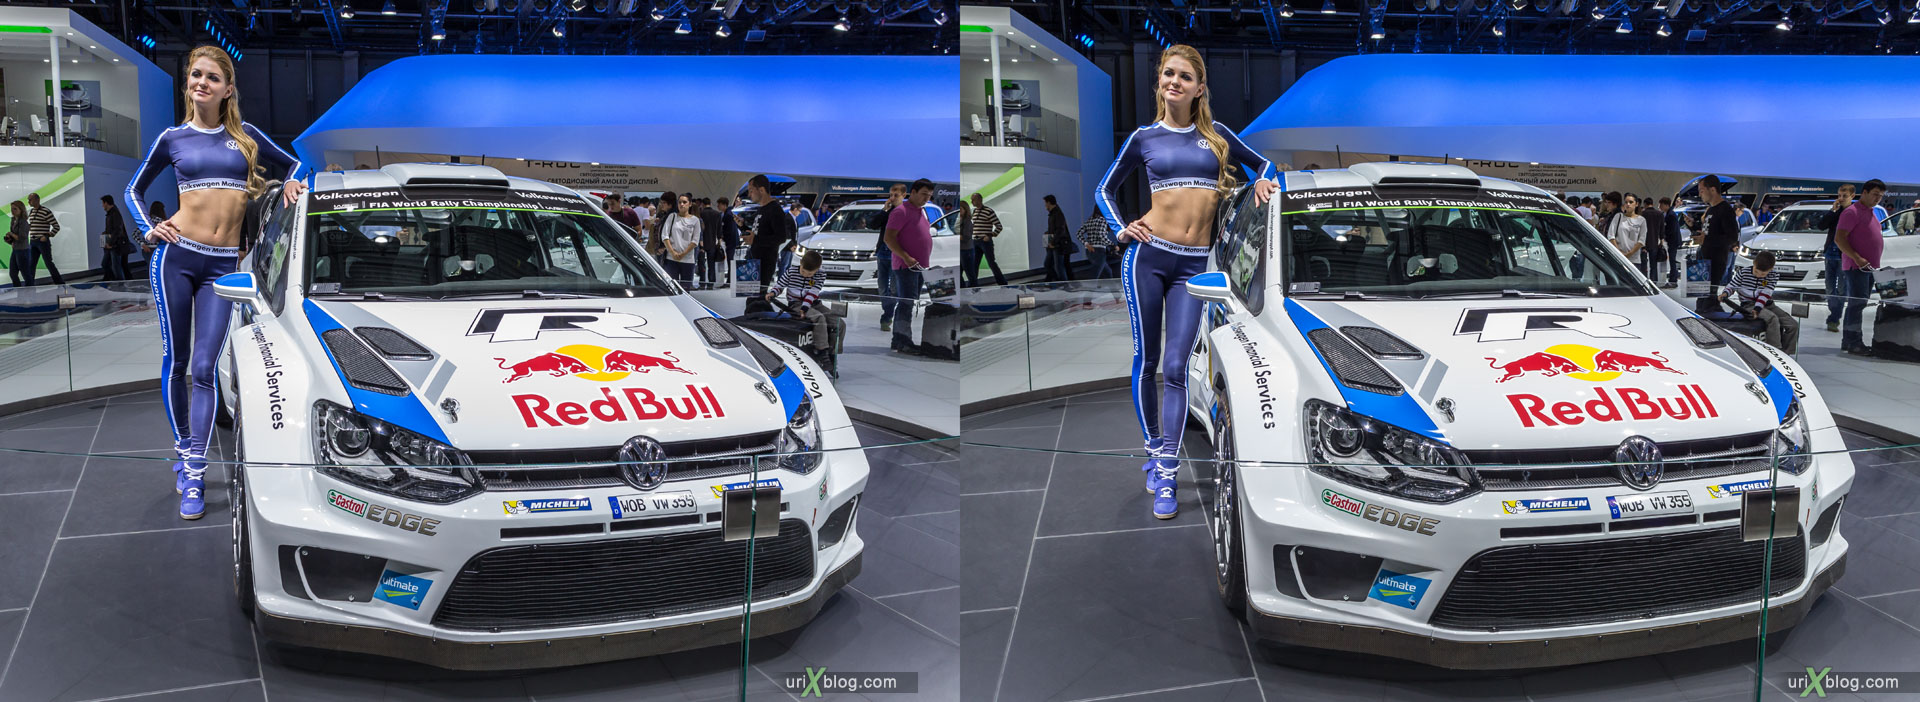 Volkswagen, Moscow International Automobile Salon 2014, MIAS 2014, girls, models, Crocus Expo, Moscow, Russia, 3D, stereo pair, cross-eyed, crossview, cross view stereo pair, stereoscopic, 2014